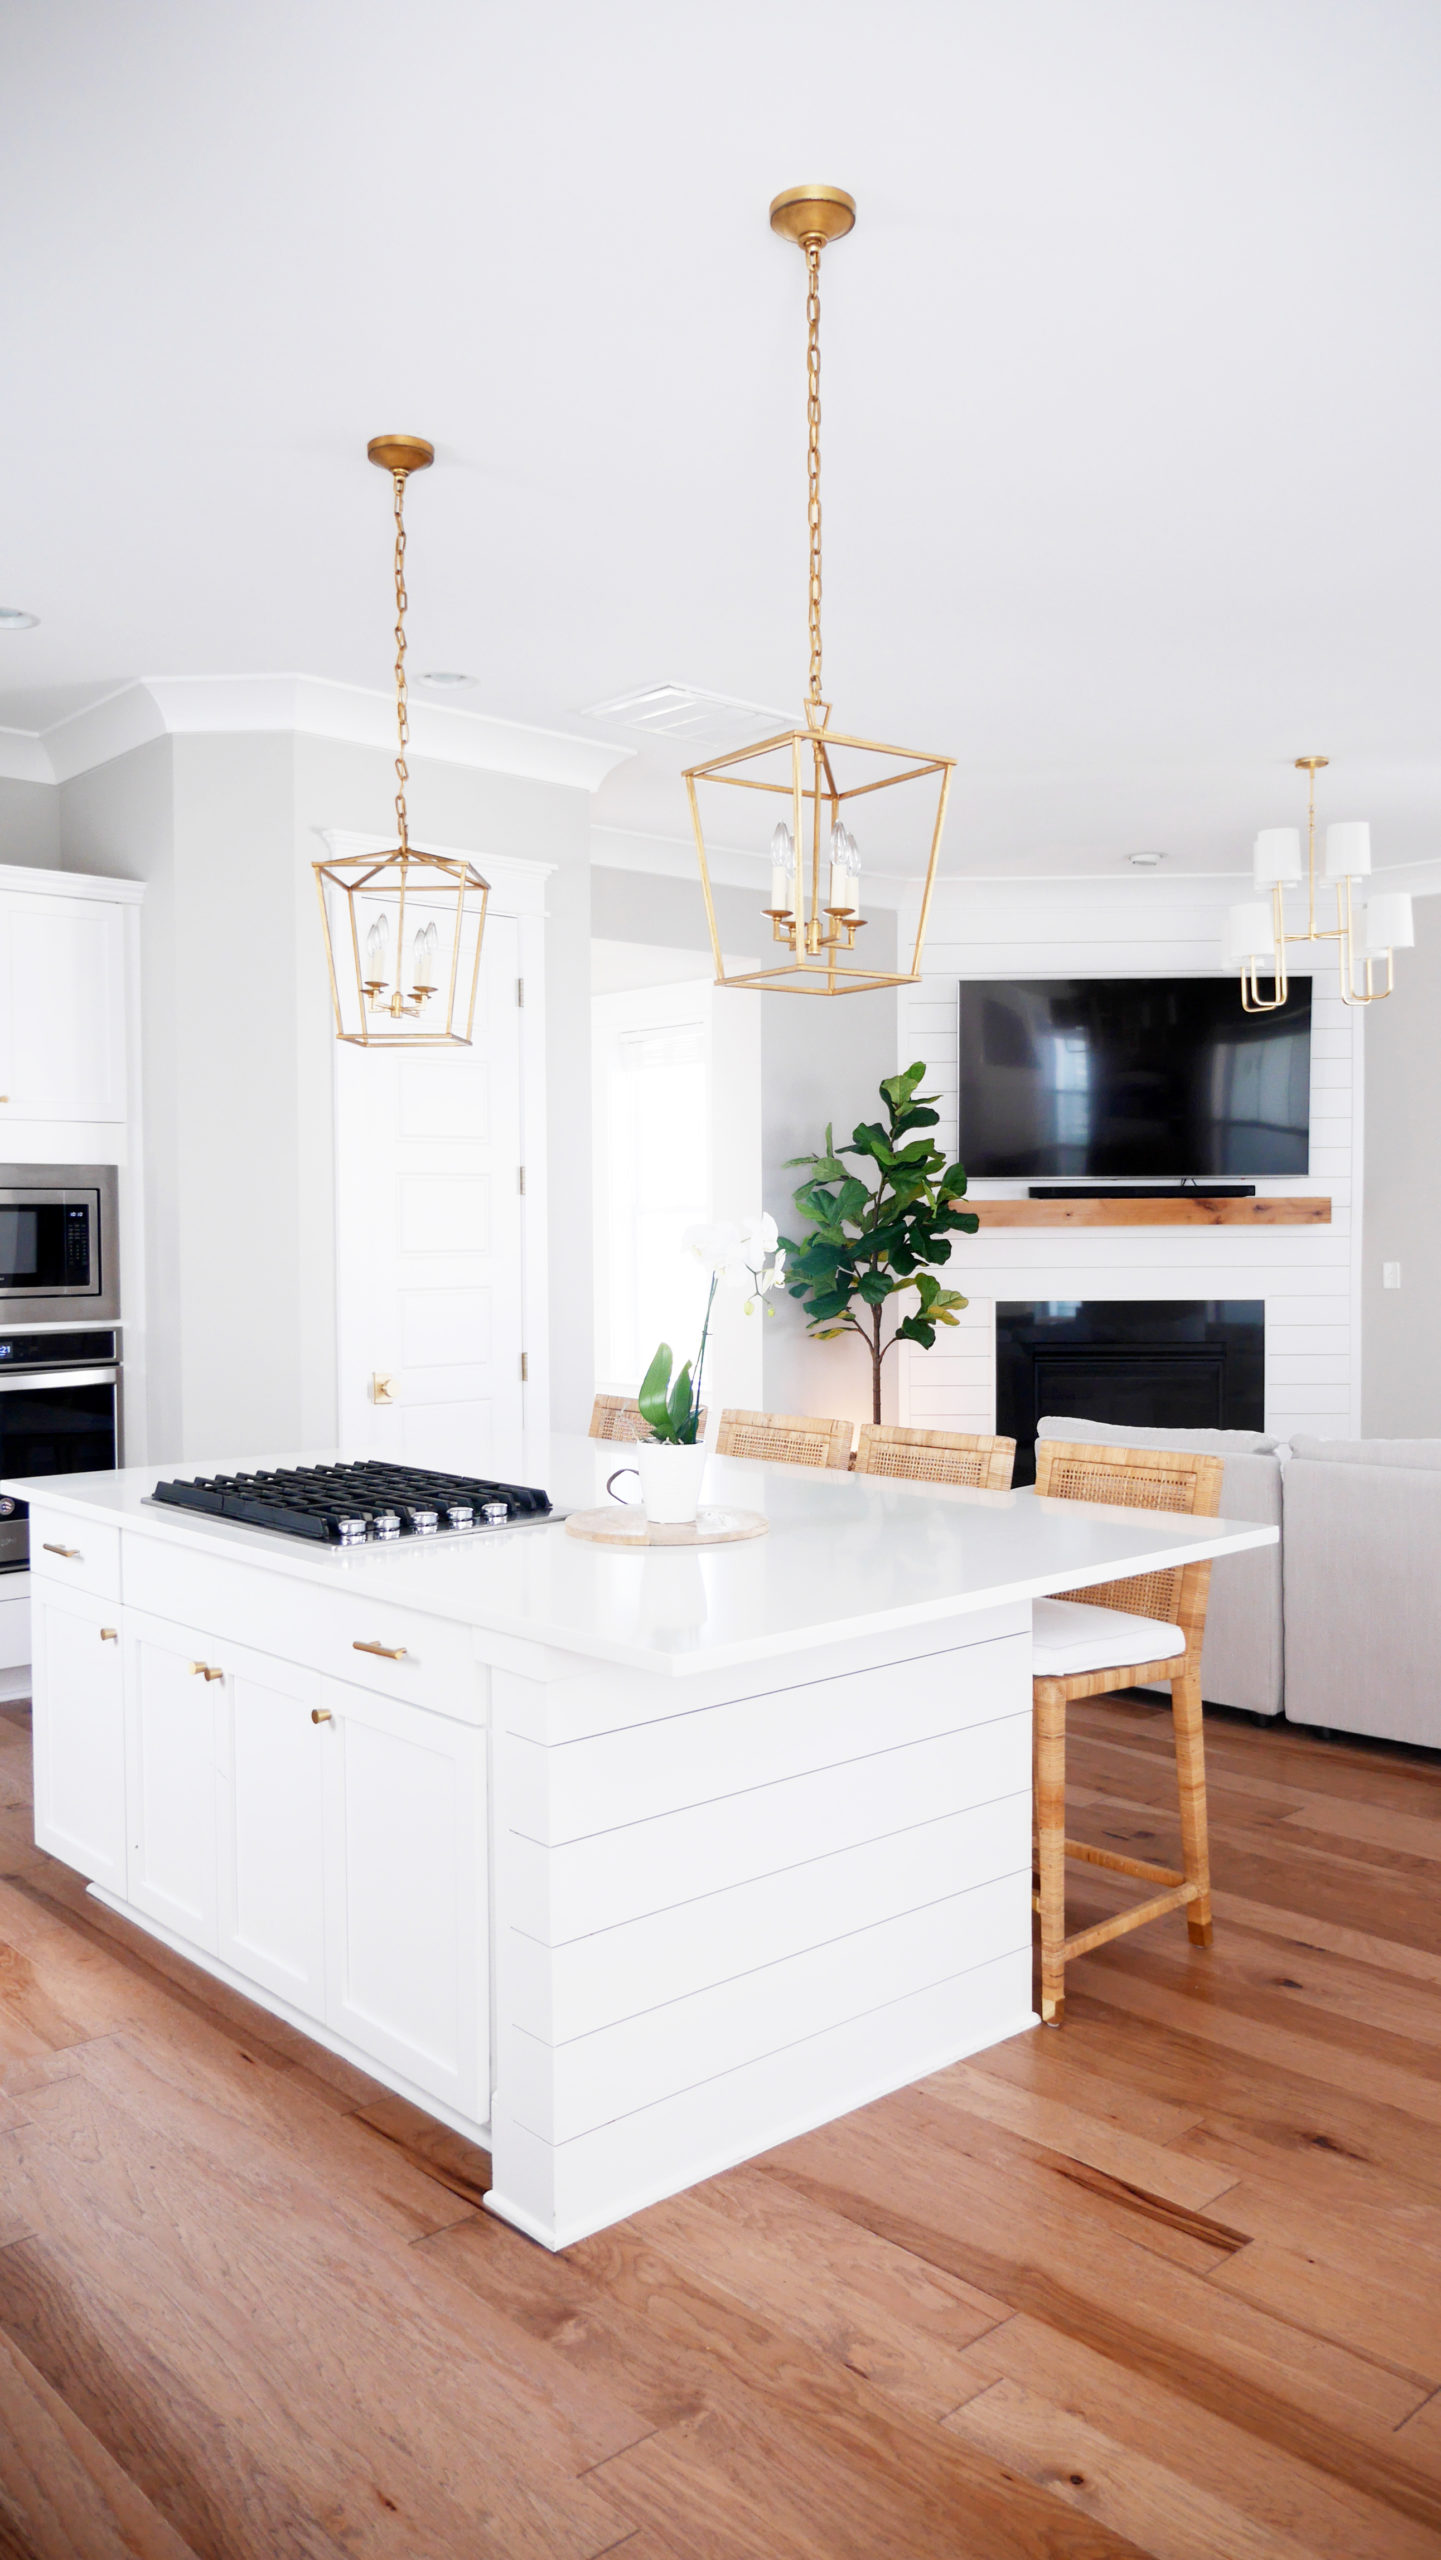 Serena and Lily, Mcgee and co., custom kitchen